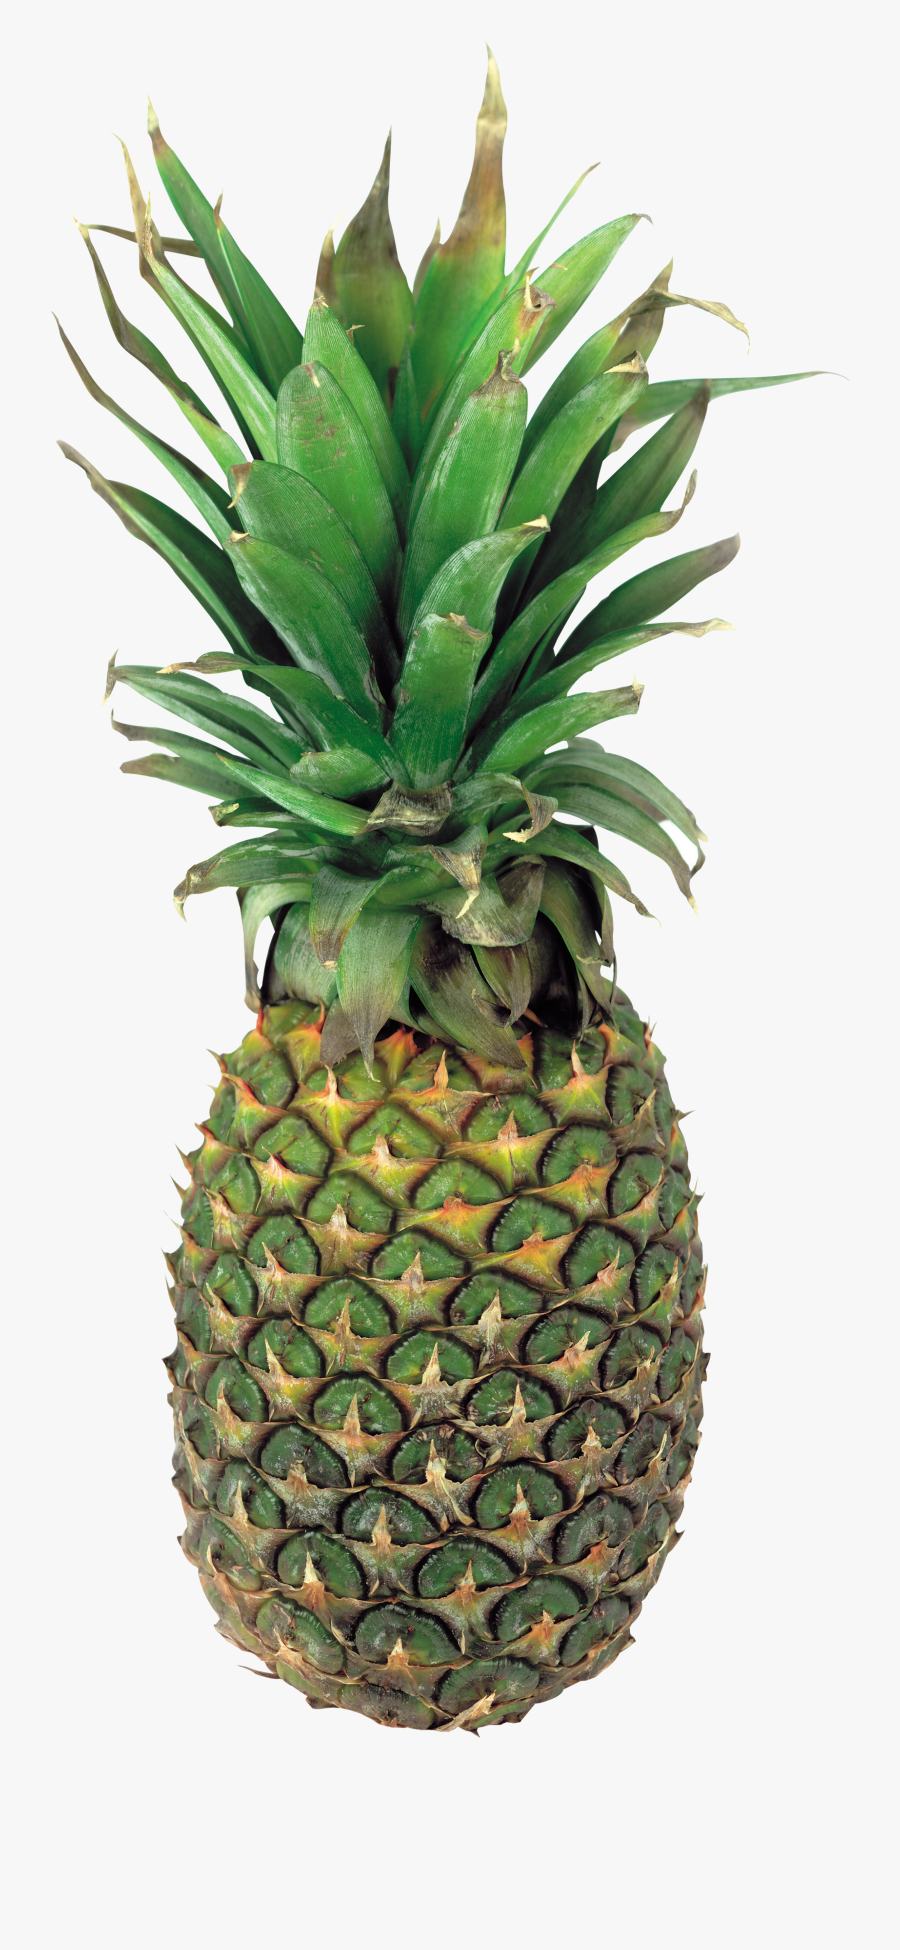 Transparent Pineapple Clipart - Pineapple .png, Transparent Clipart